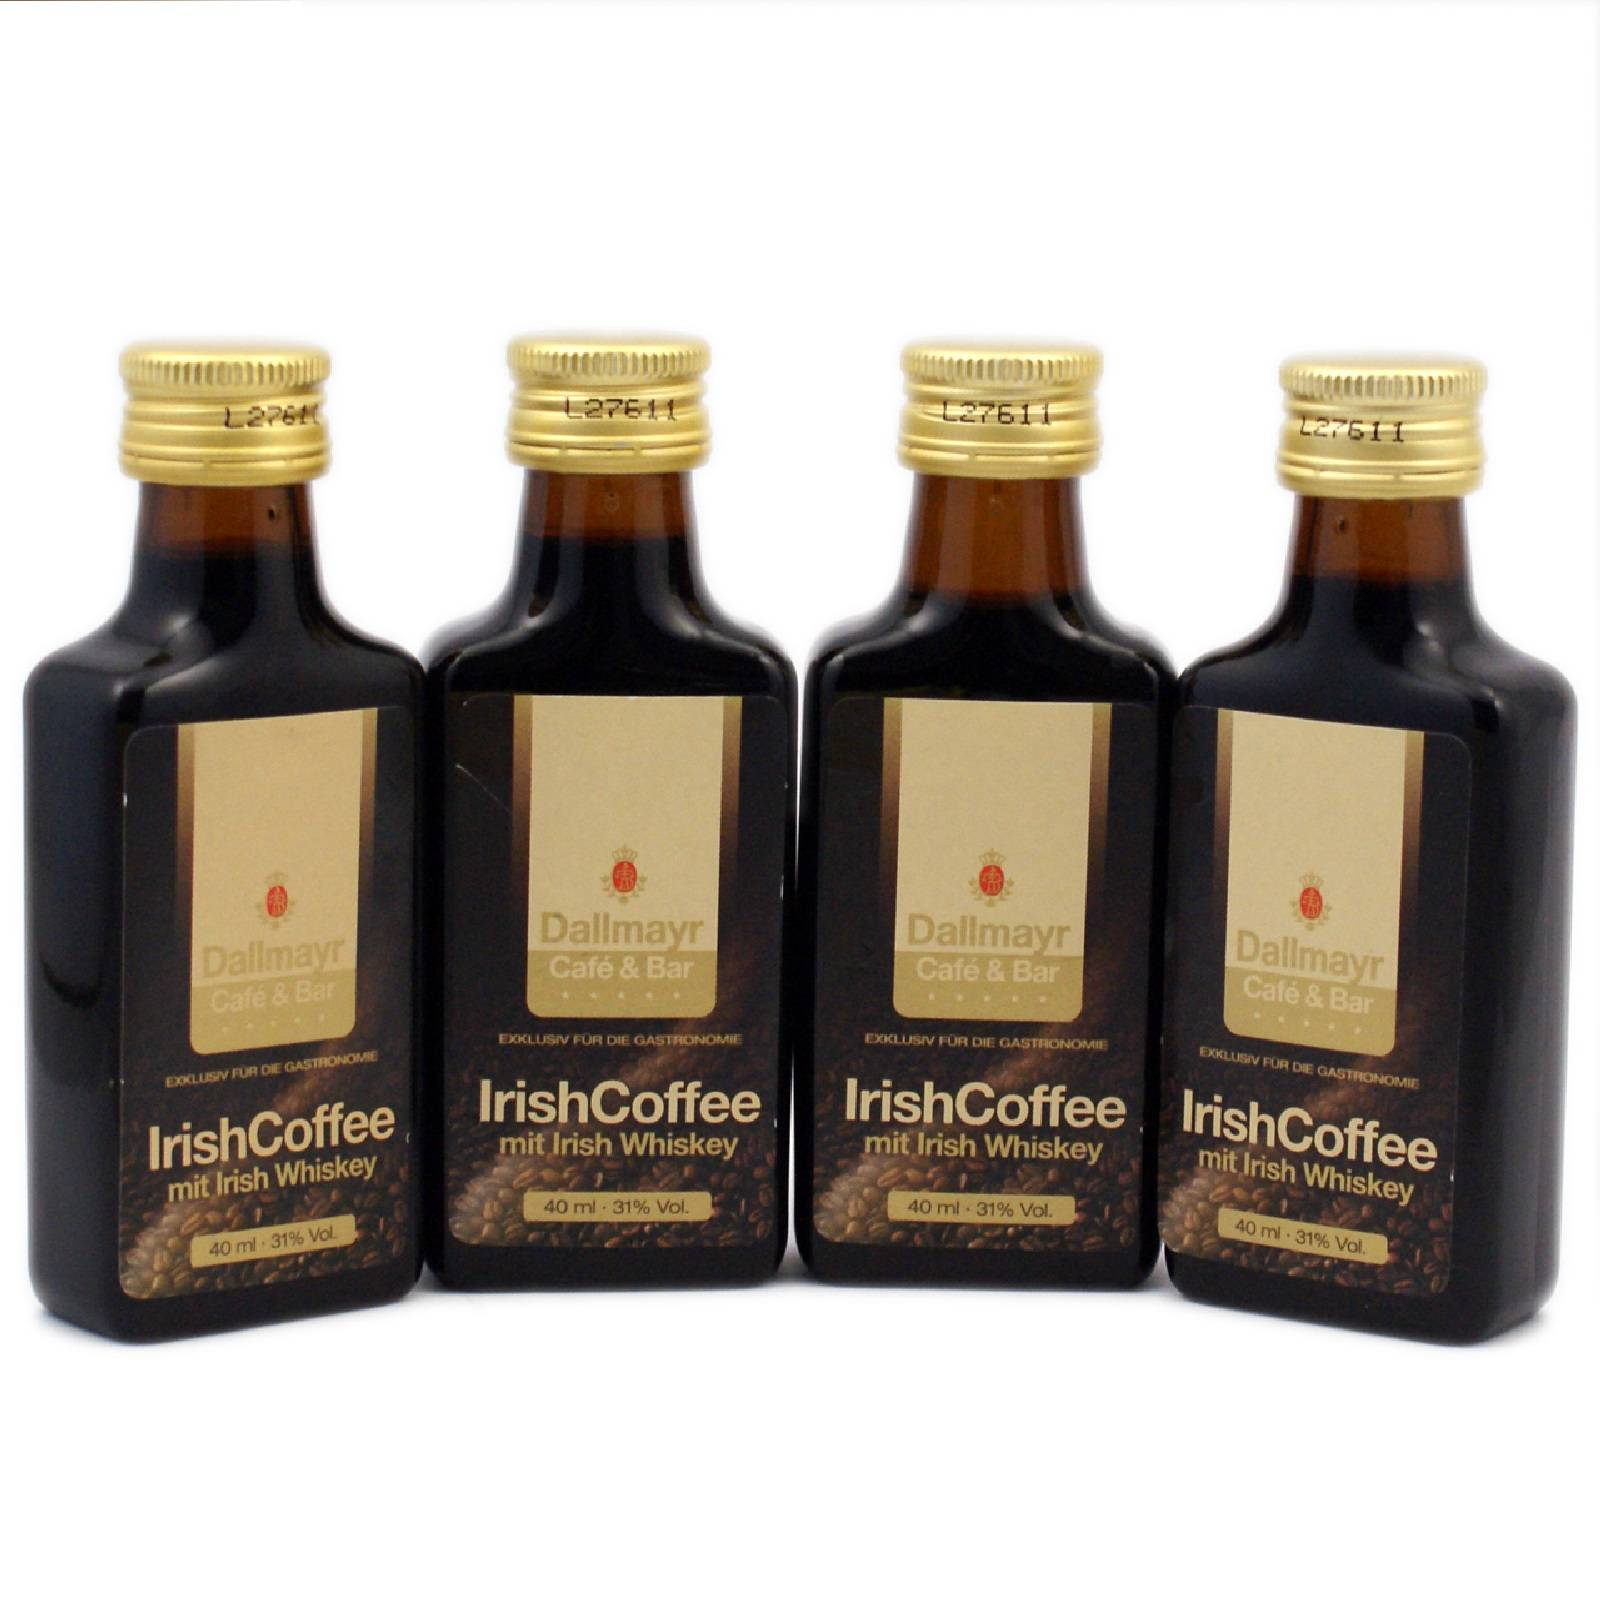 irish coffee 24 portons flaschen 40 ml irish whiskey alkohol 31 vol ebay. Black Bedroom Furniture Sets. Home Design Ideas